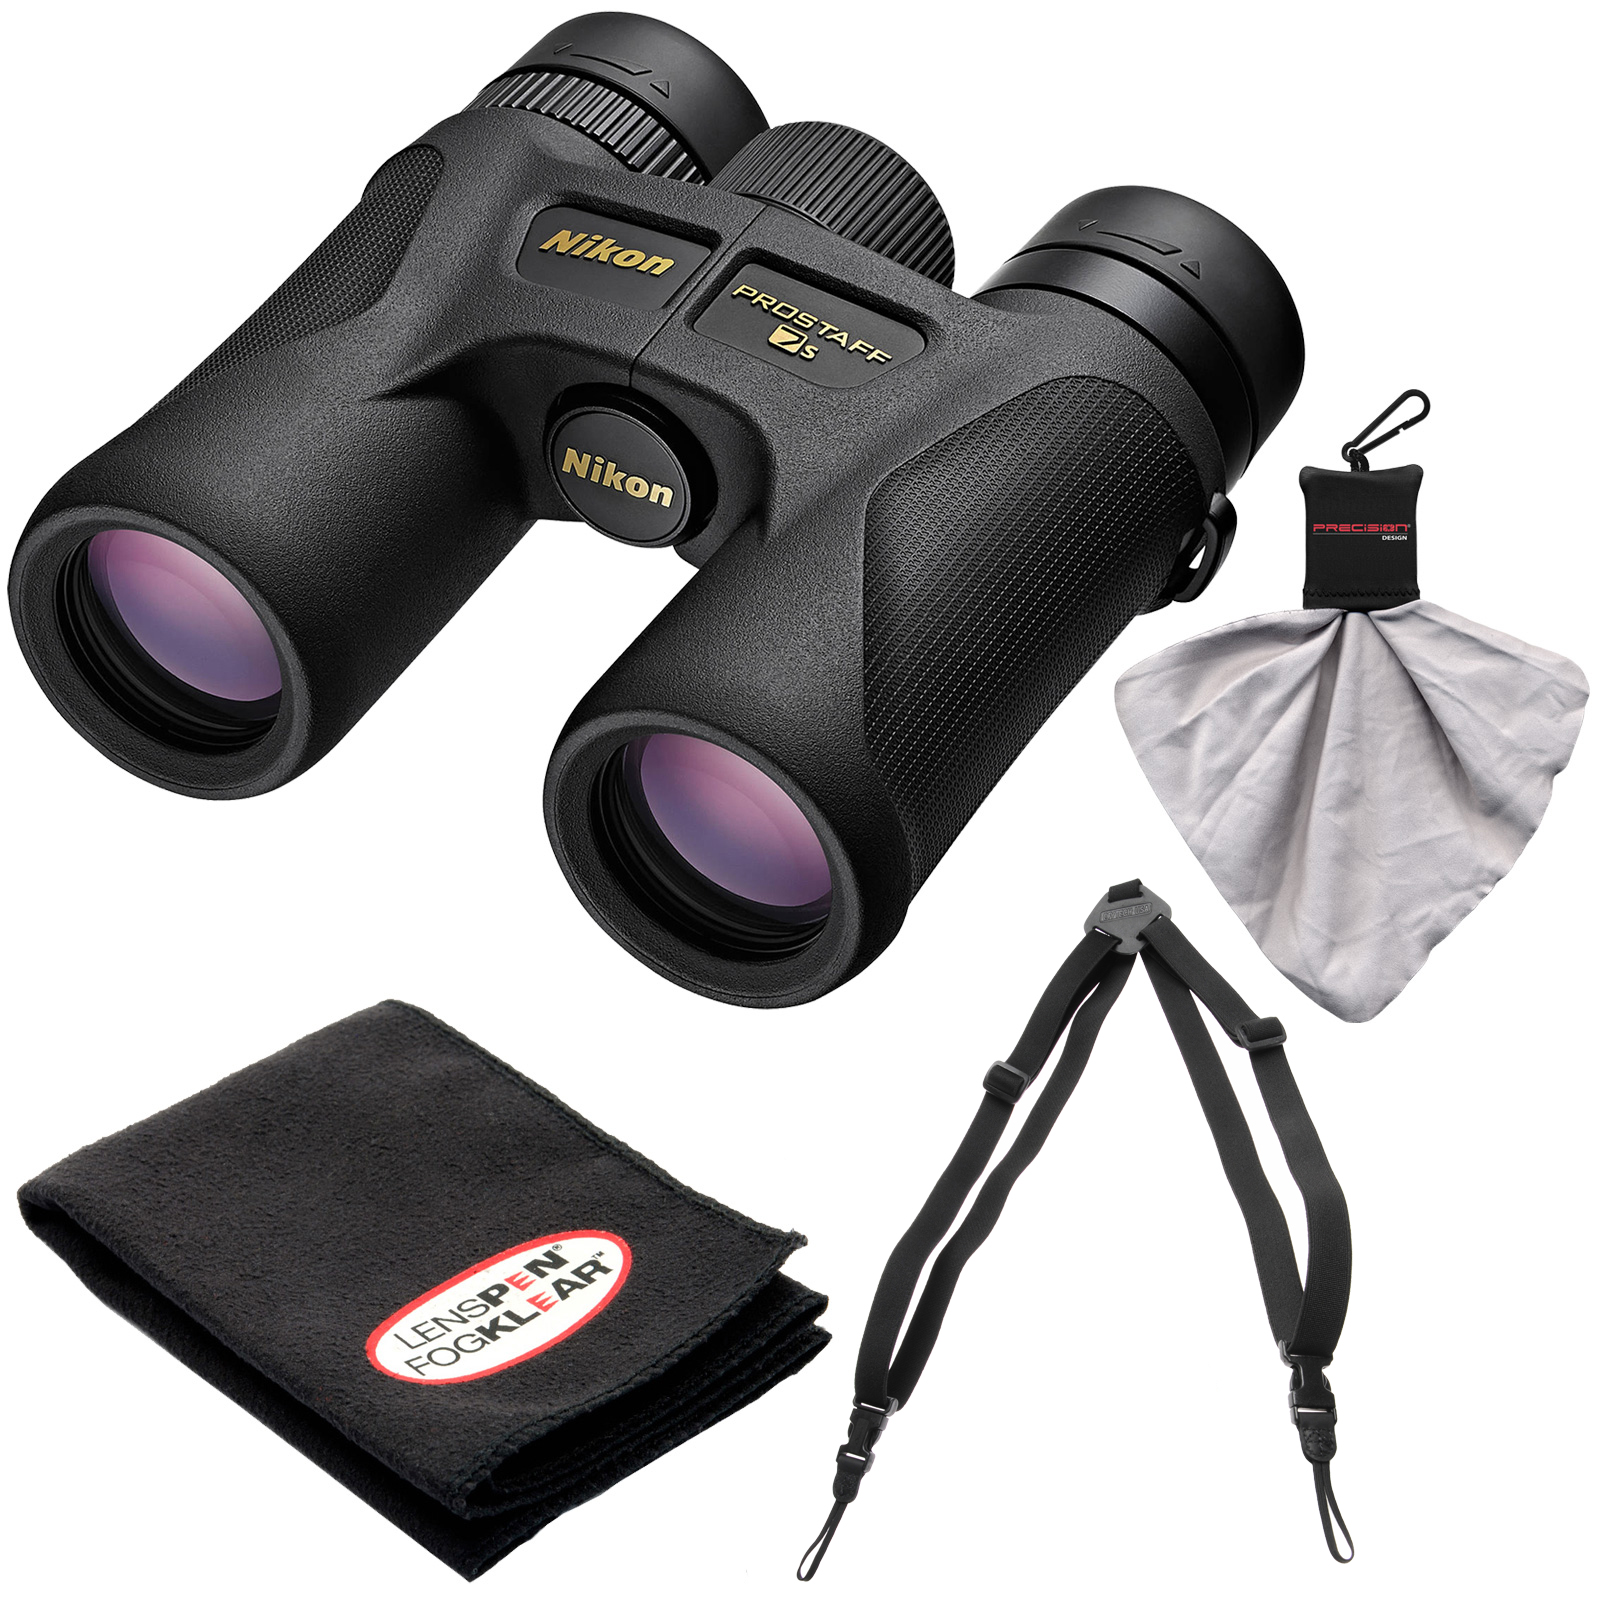 Nikon Prostaff 7S 10x30 ATB Waterproof/Fogproof Binoculars with Case + Easy Carry Harness + Cleaning Cloth Kit